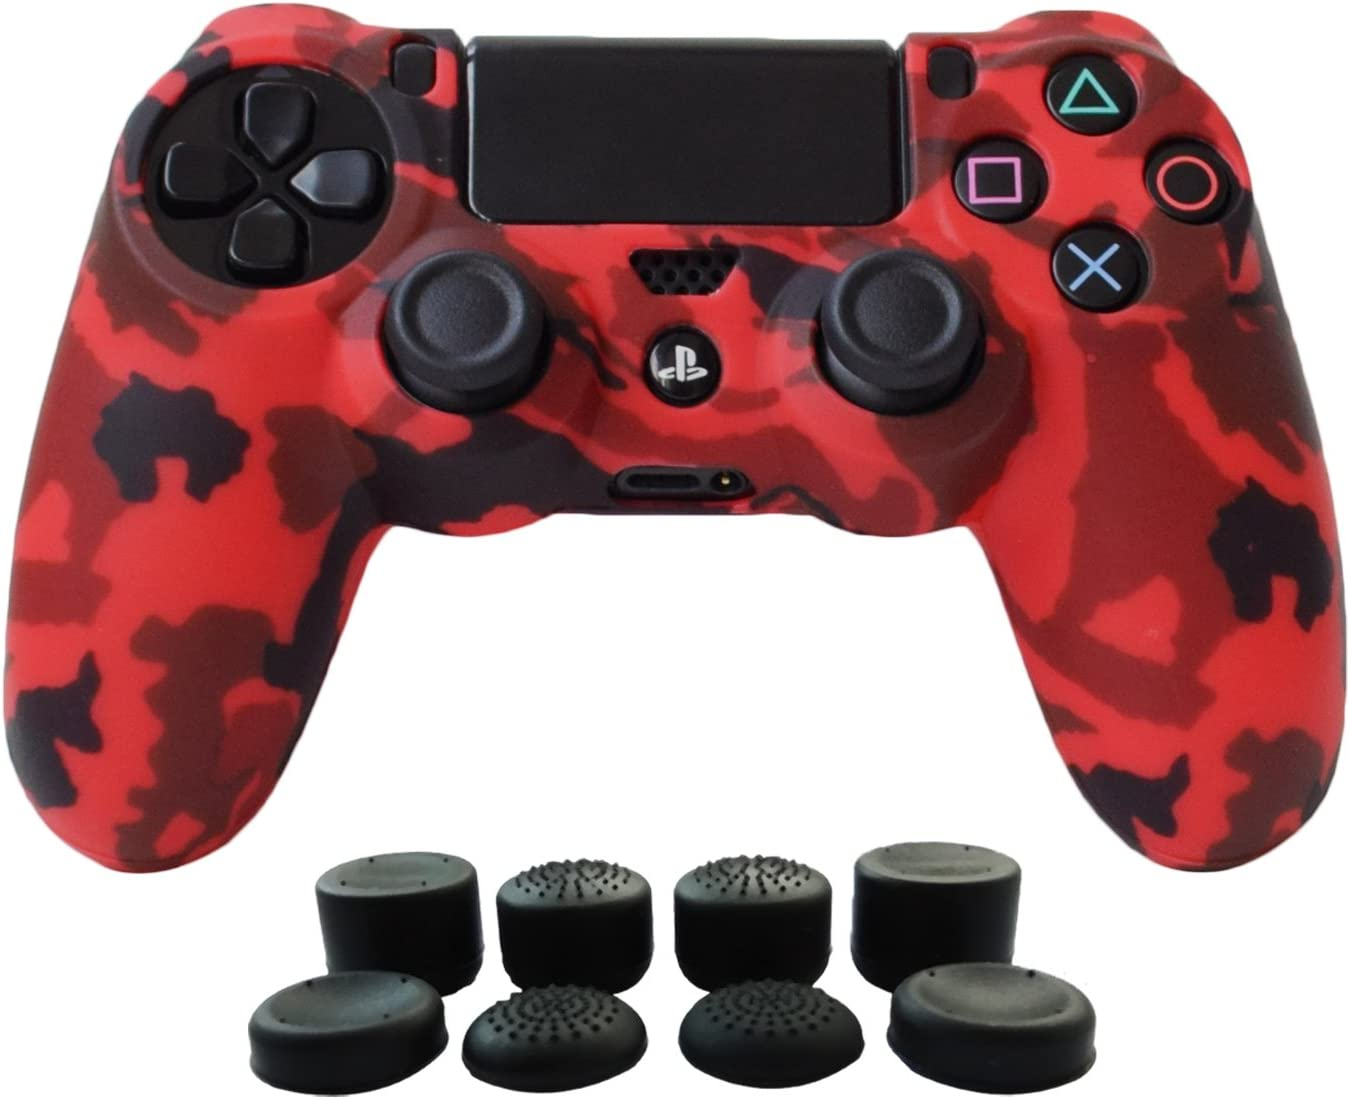 Hikfly Silicone Gel Controller Cover Skin Protector Compatible for Sony Playstation 4 PS4/PS4 Slim/PS4 Pro Controller (1 x Controller Cover with 8 x FPS Pro Thumb Grip Caps)(Red)